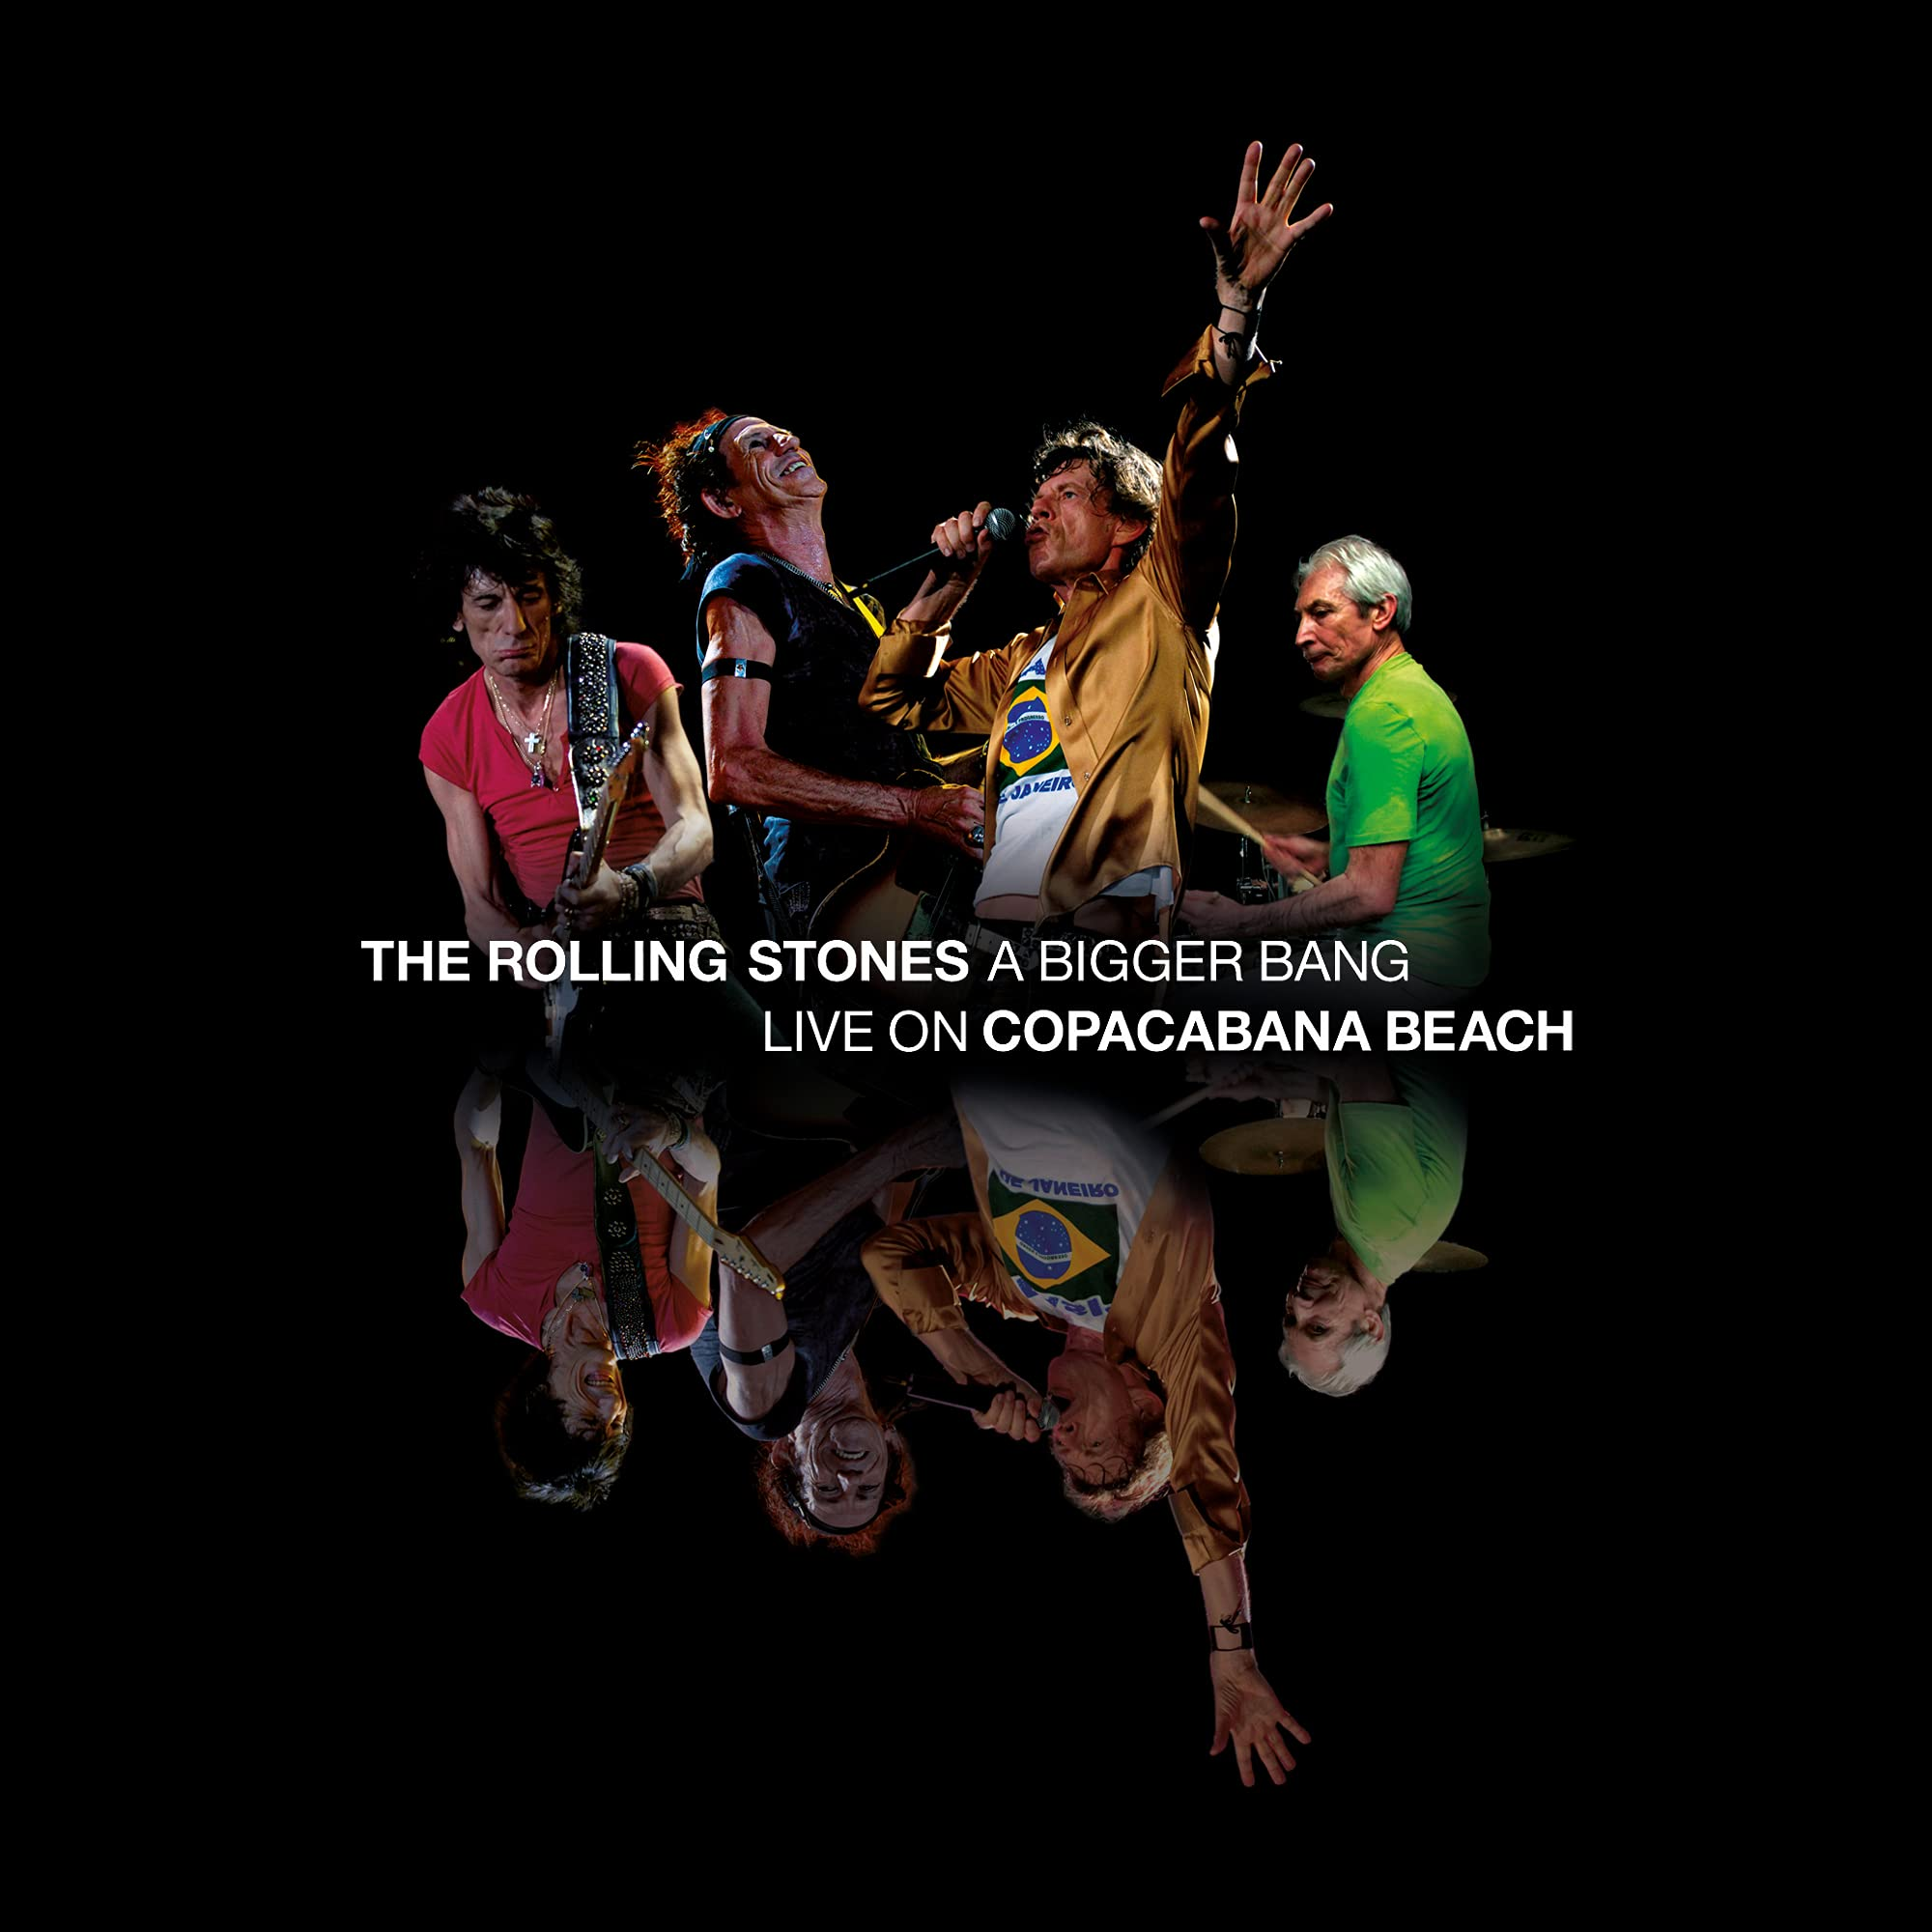 The Rolling Stones - A Bigger Bang Live On Copacabana Beach (2021) [FLAC] Download